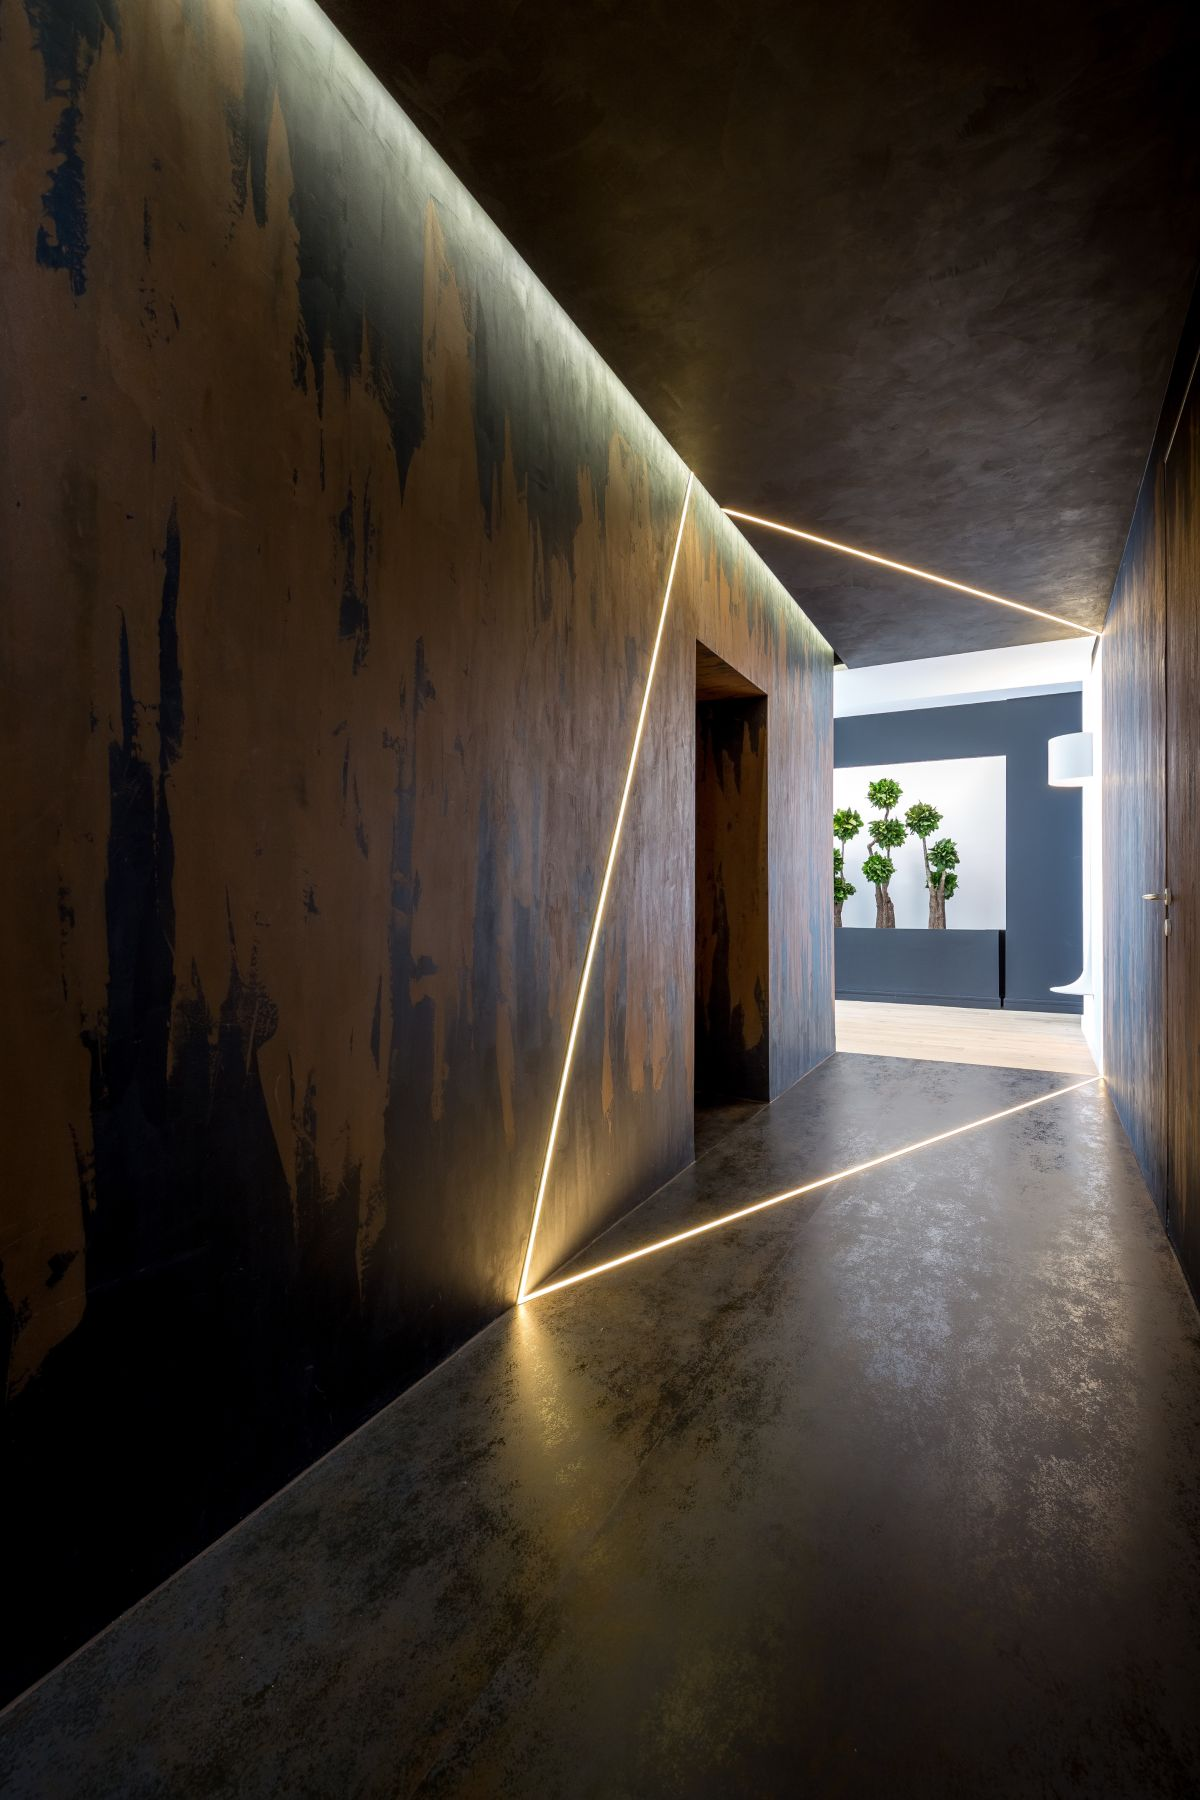 An Unusual, Dark Entryway Creates Drama As People Enter The Apartment.